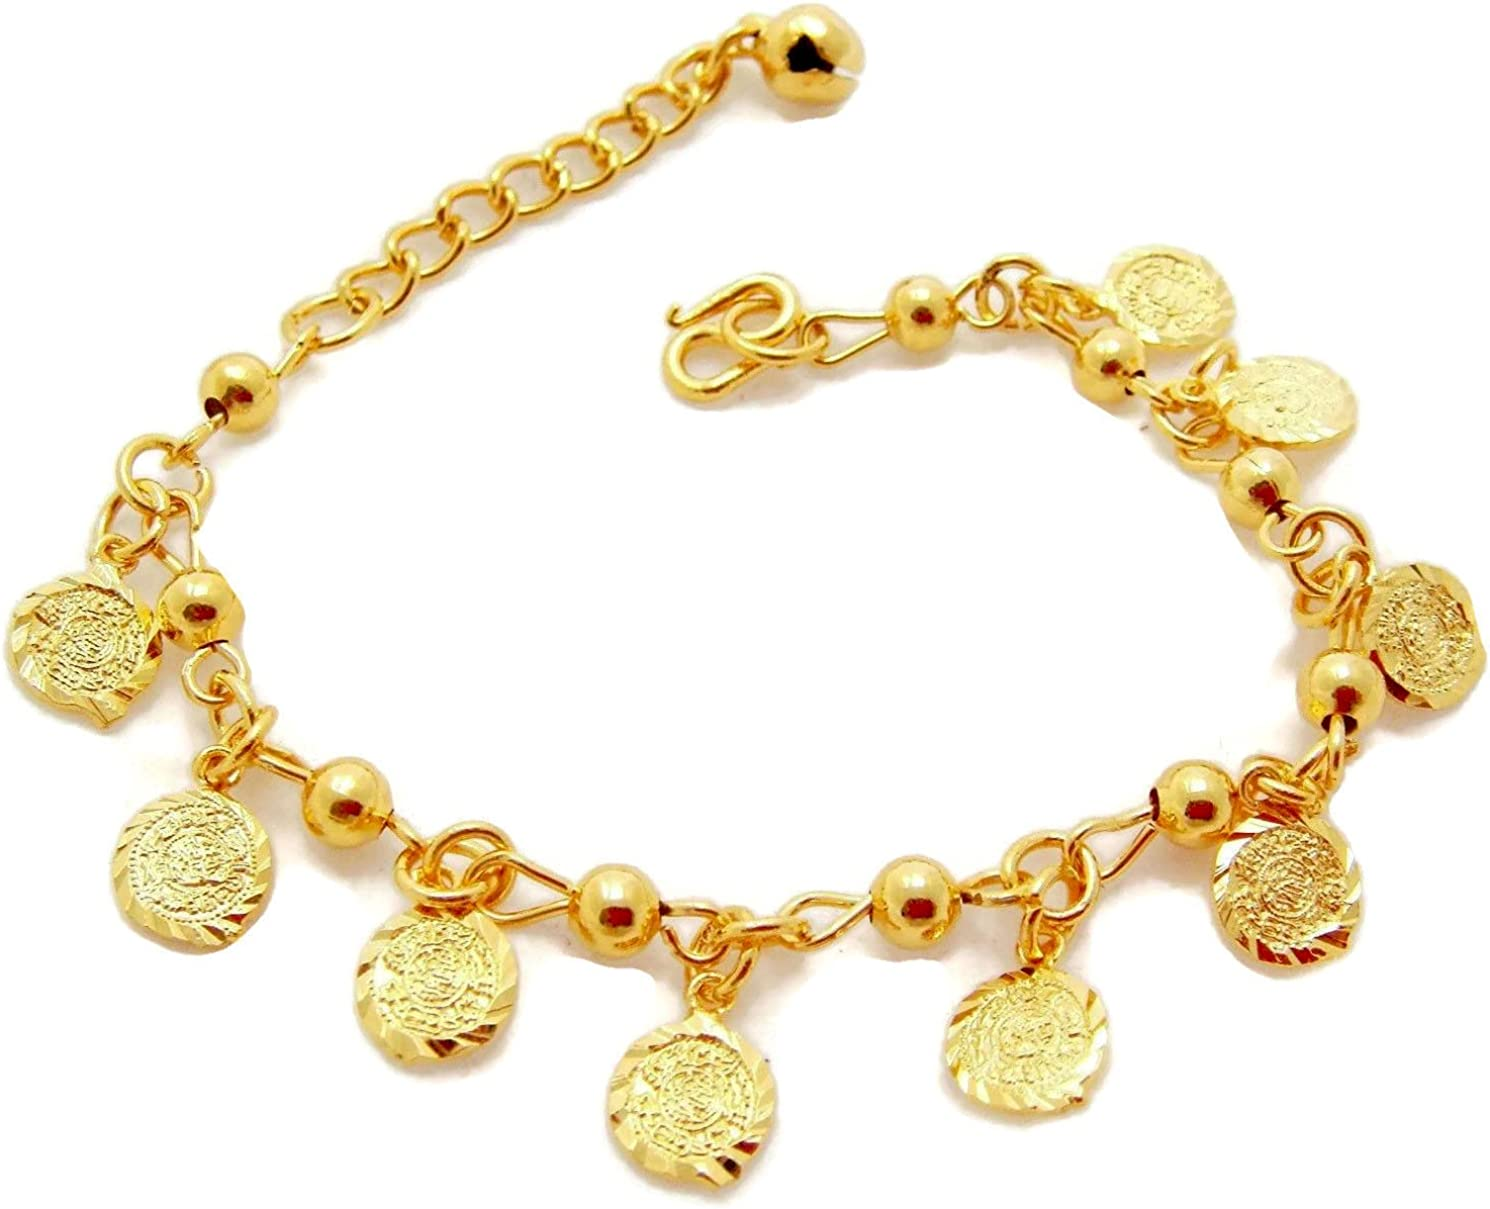 arrawana77 Elephant Bell 24k Thai Baht Gold Plated Foots Jewelry Bracelet Charm Anklet 9 Inch